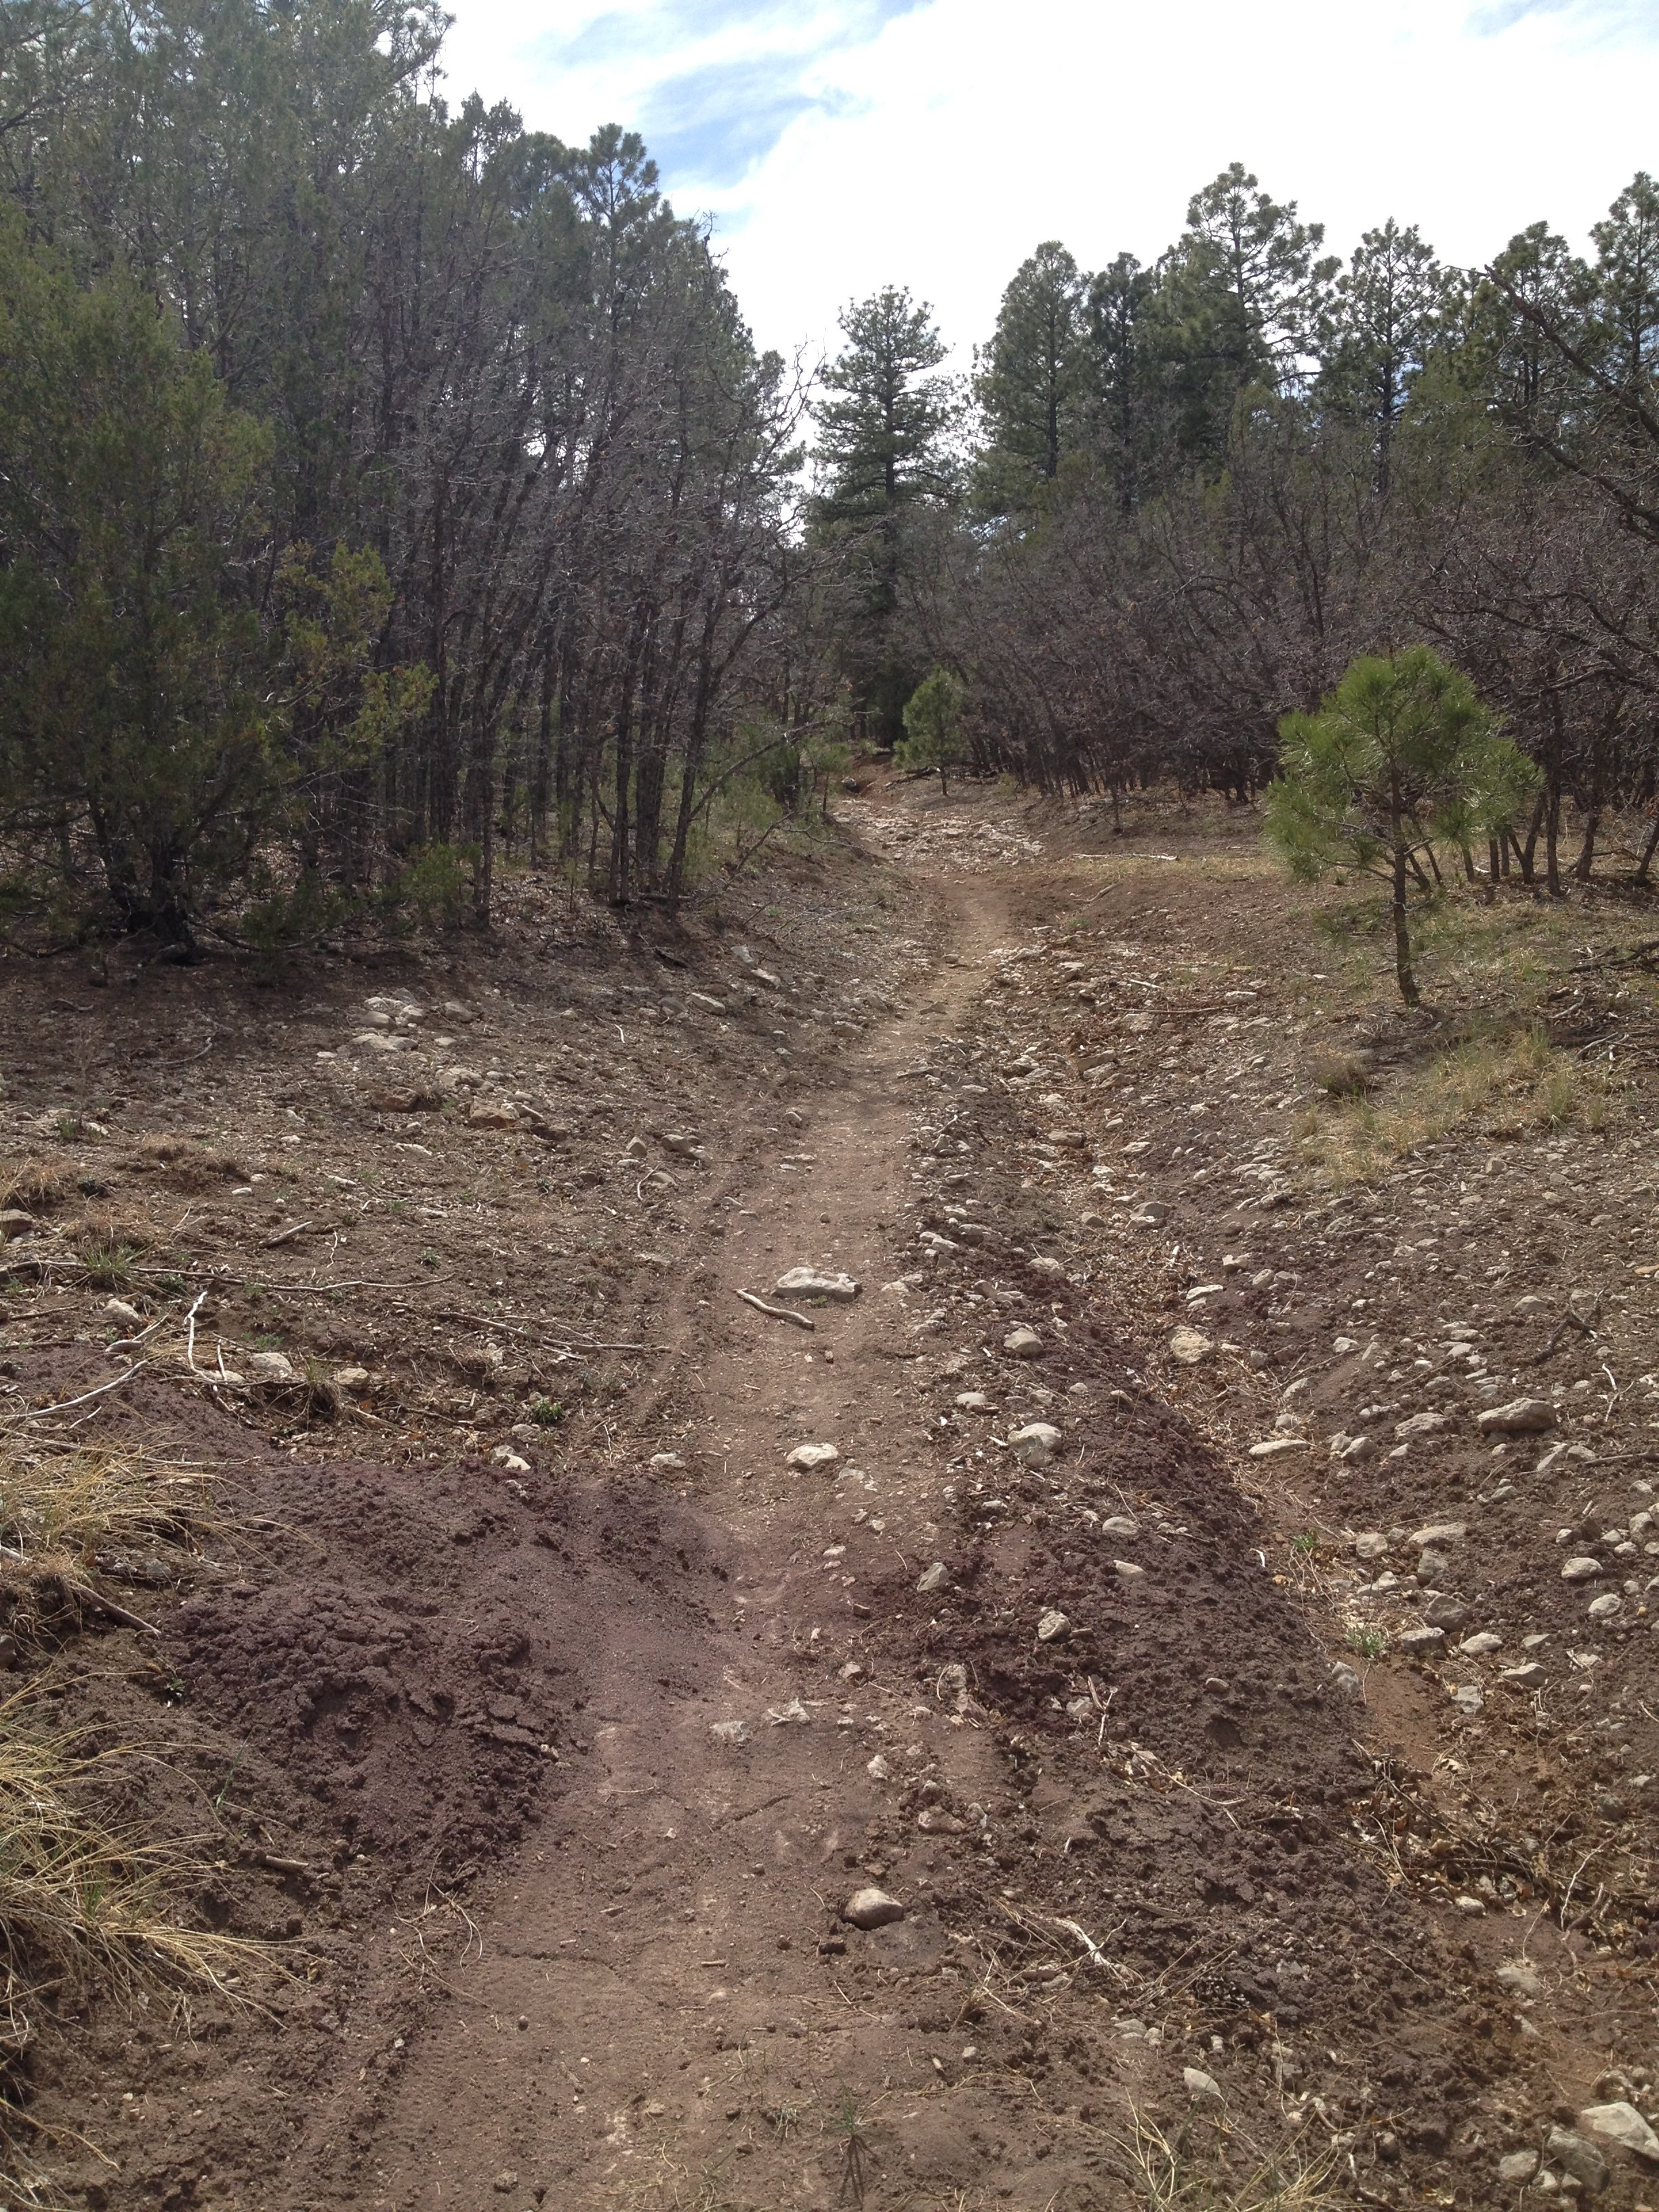 Smooth, cross-country singletrack nestled amongst the evergreens on Ponderosa.